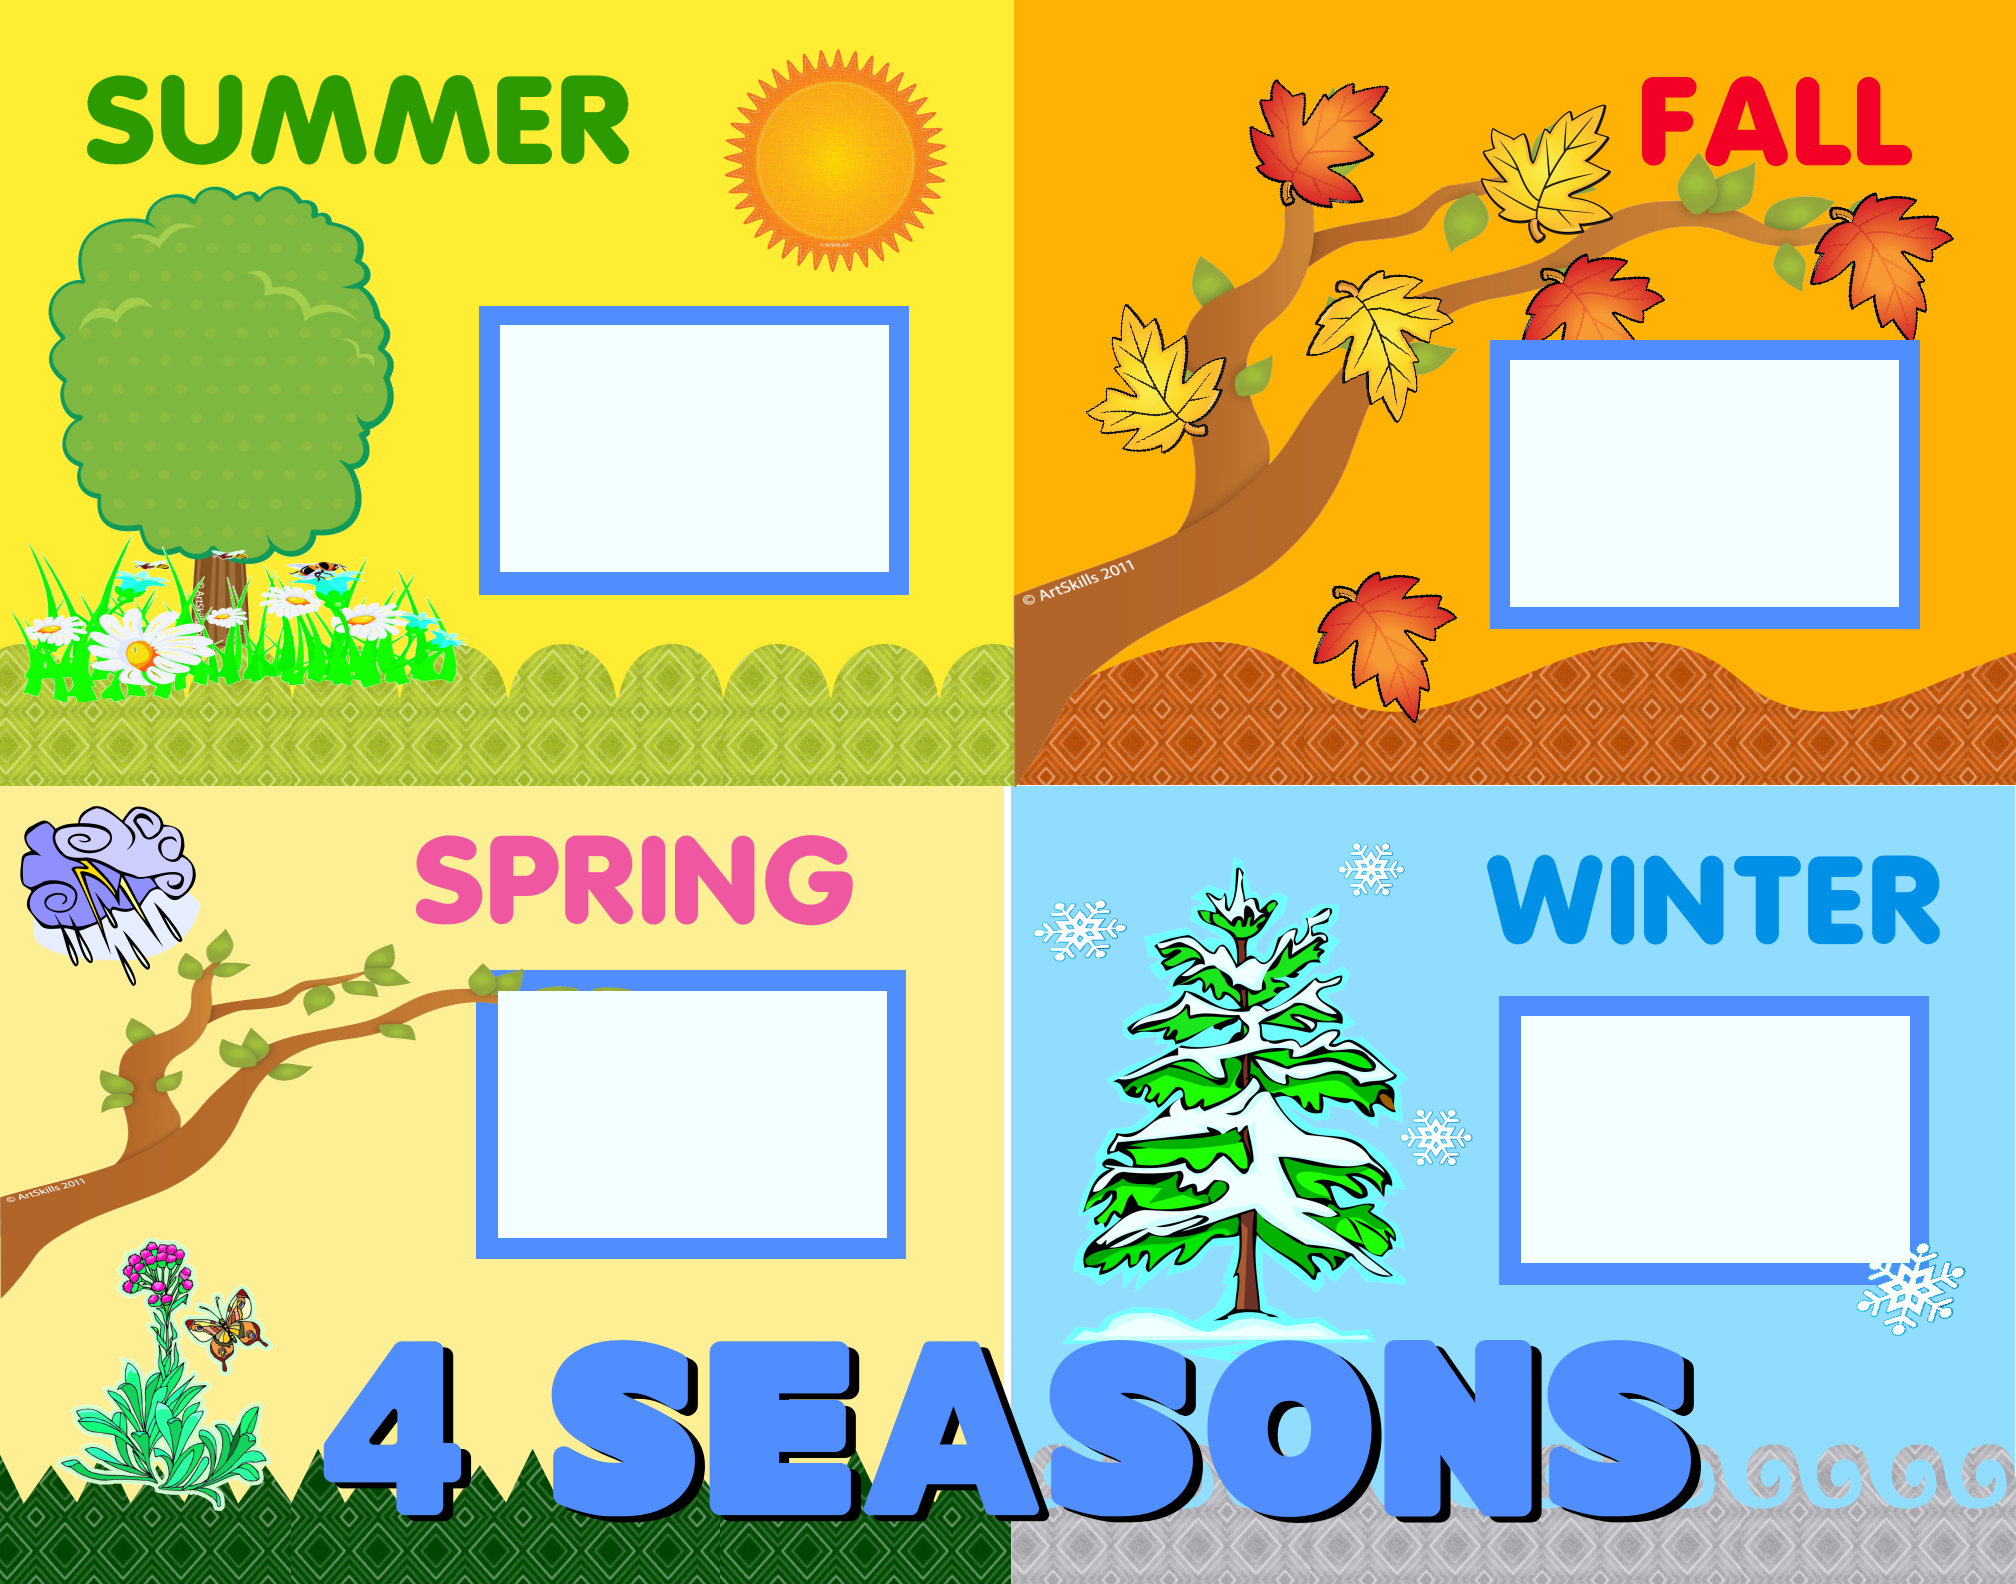 create a 4 seasons poster school poster educational science fair clip art black and white science fair clip art with cups and candles